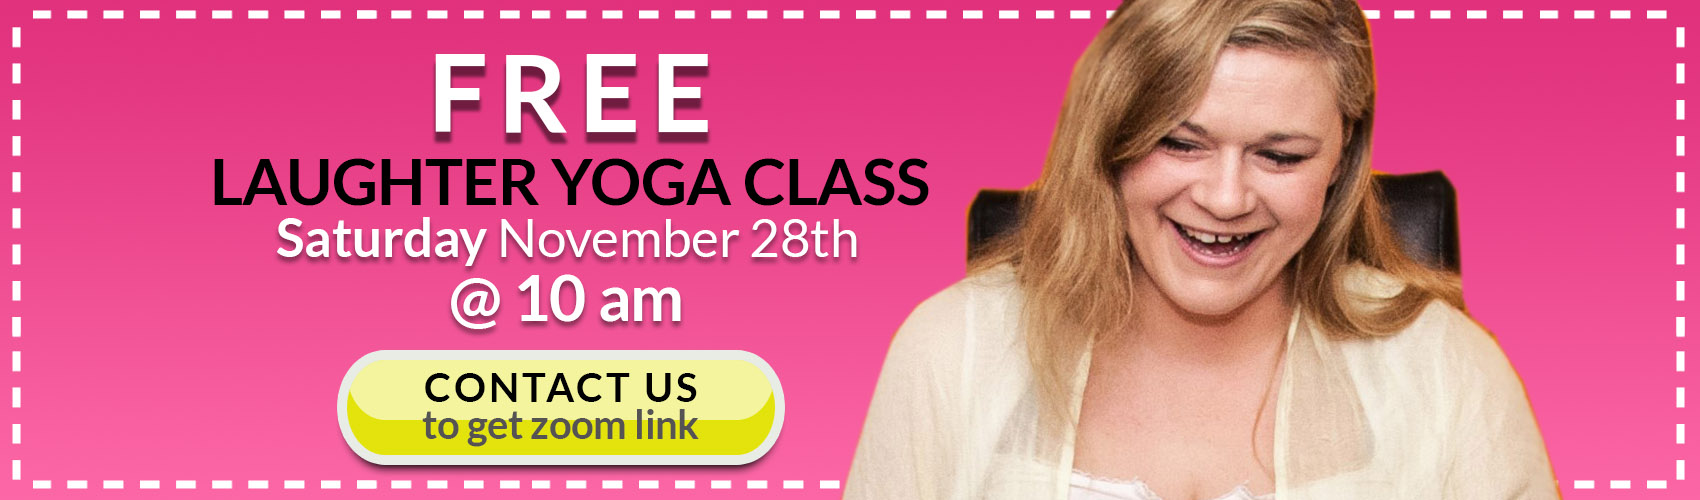 free laughter yoga class ireland